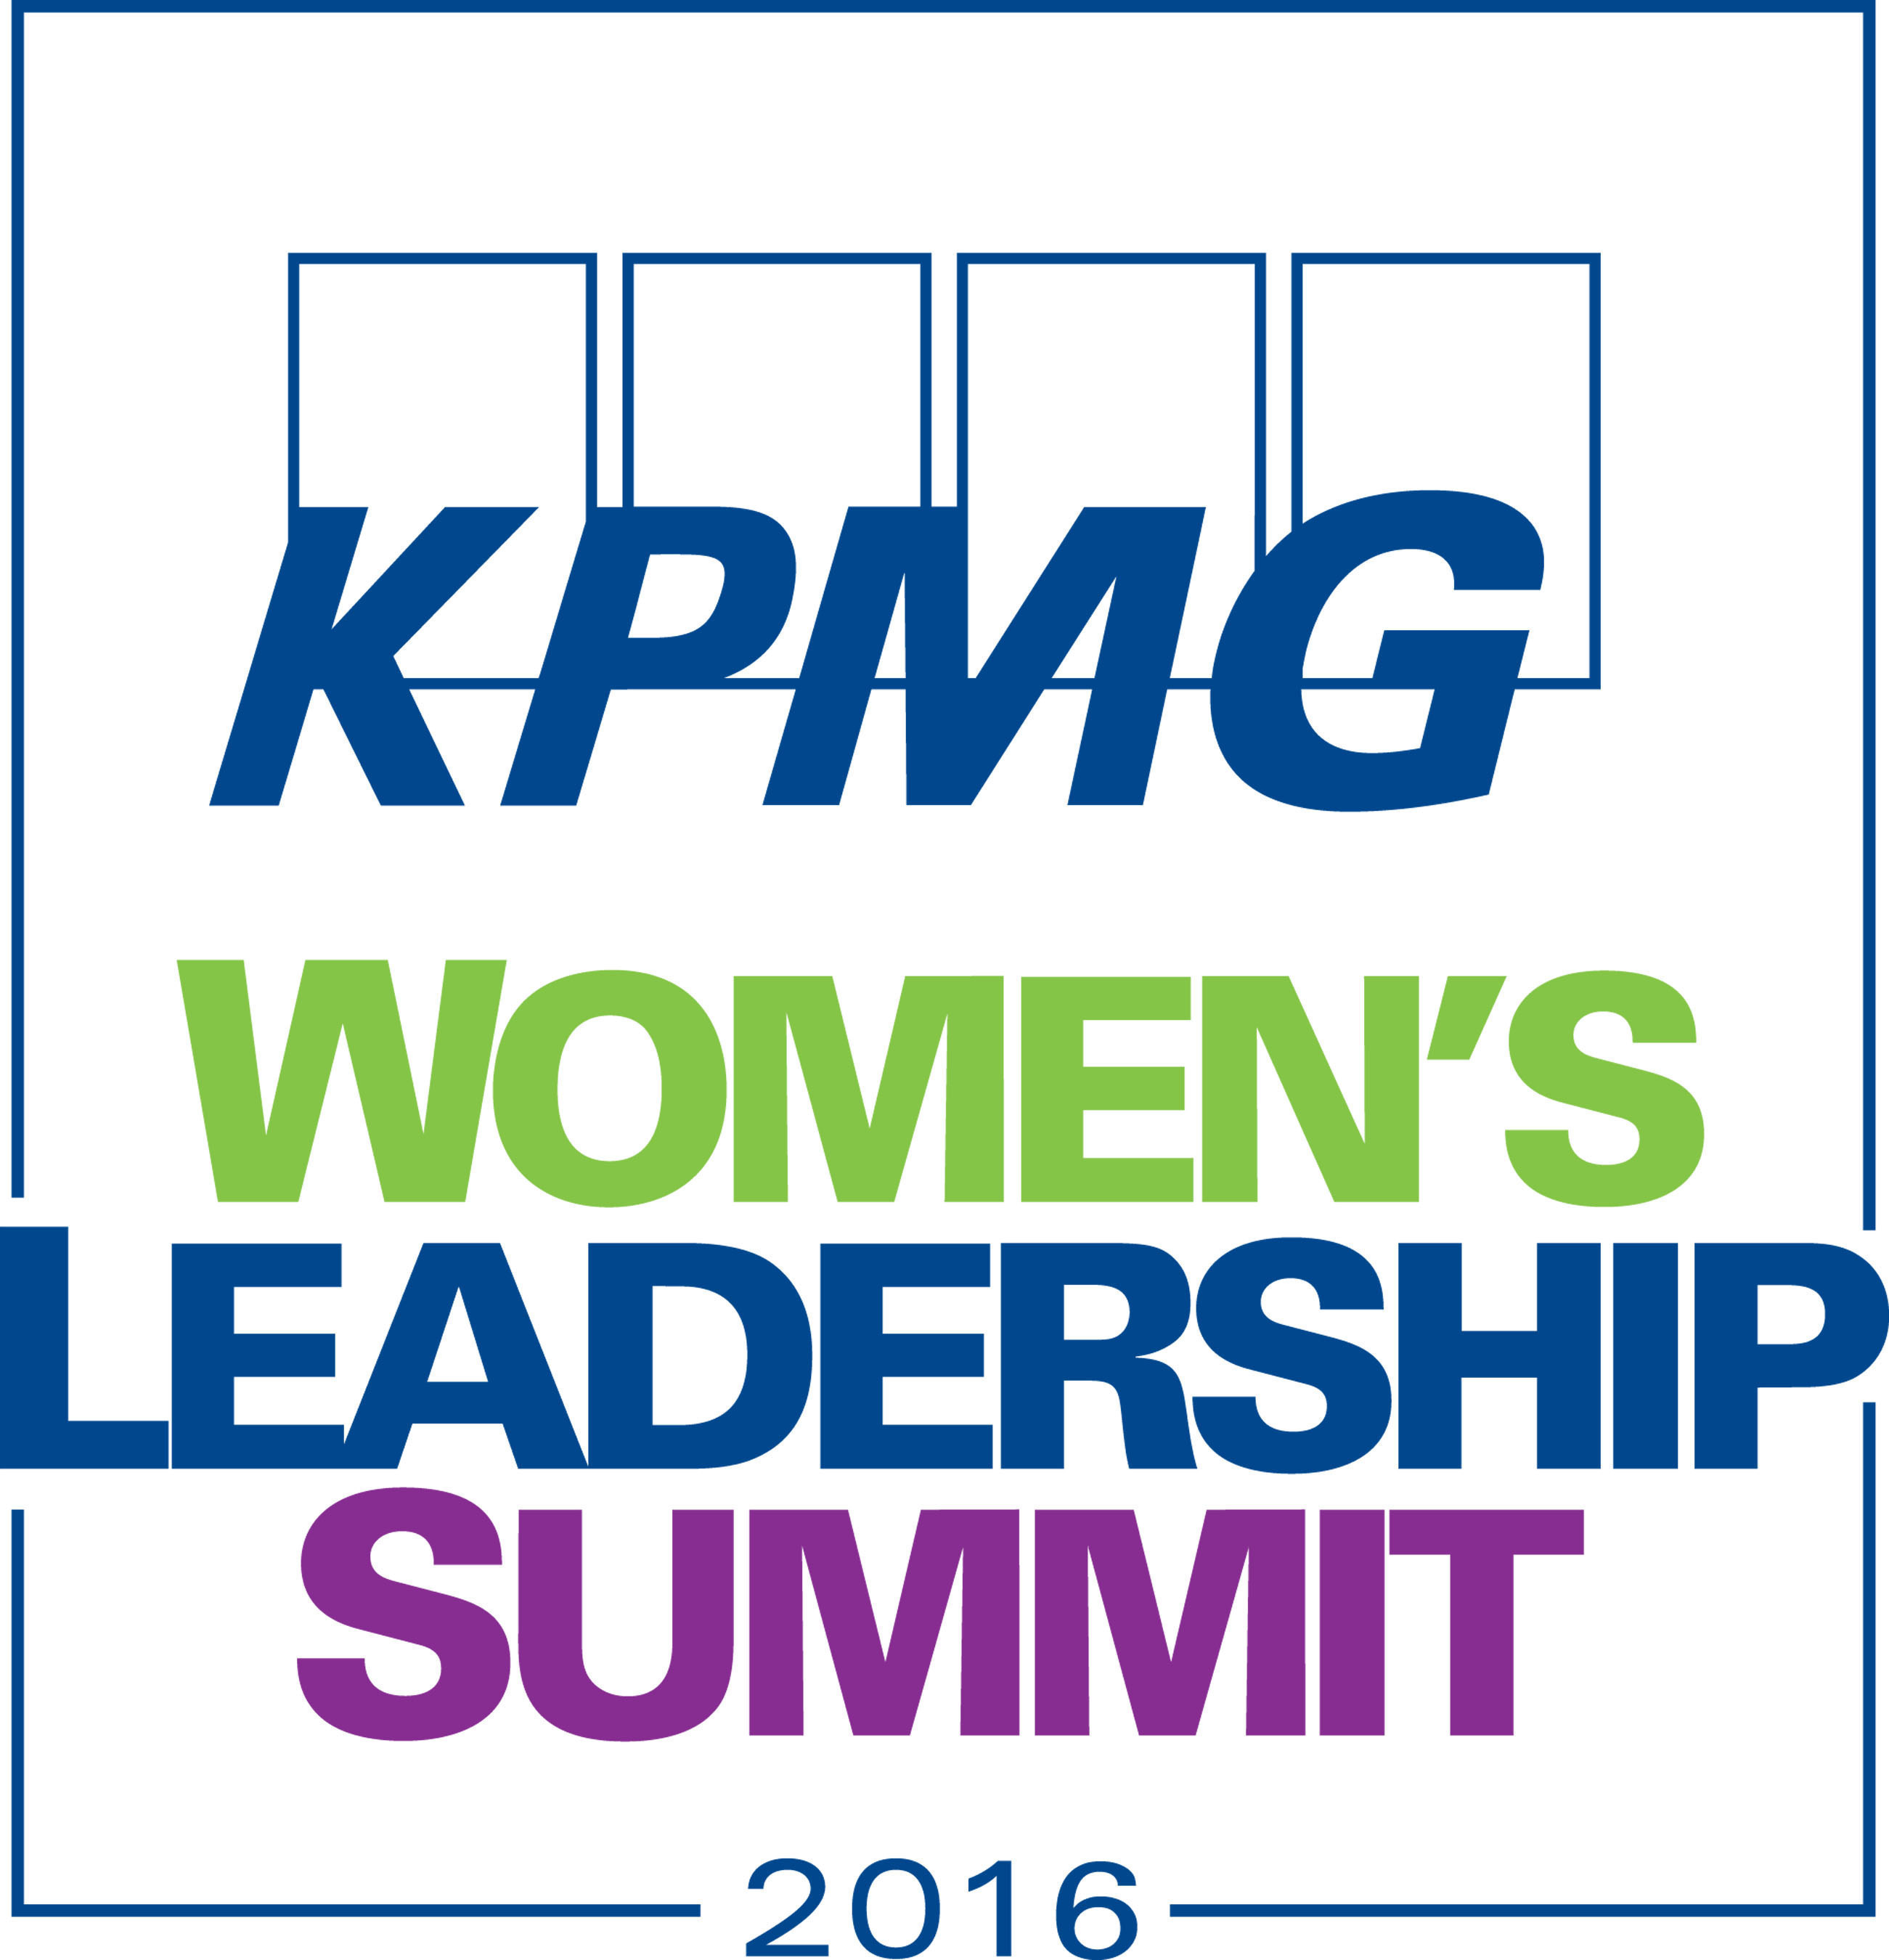 Condoleezza Rice And Annika Sorenstam To Keynote 2016 KPMG Women's Leadership Summit